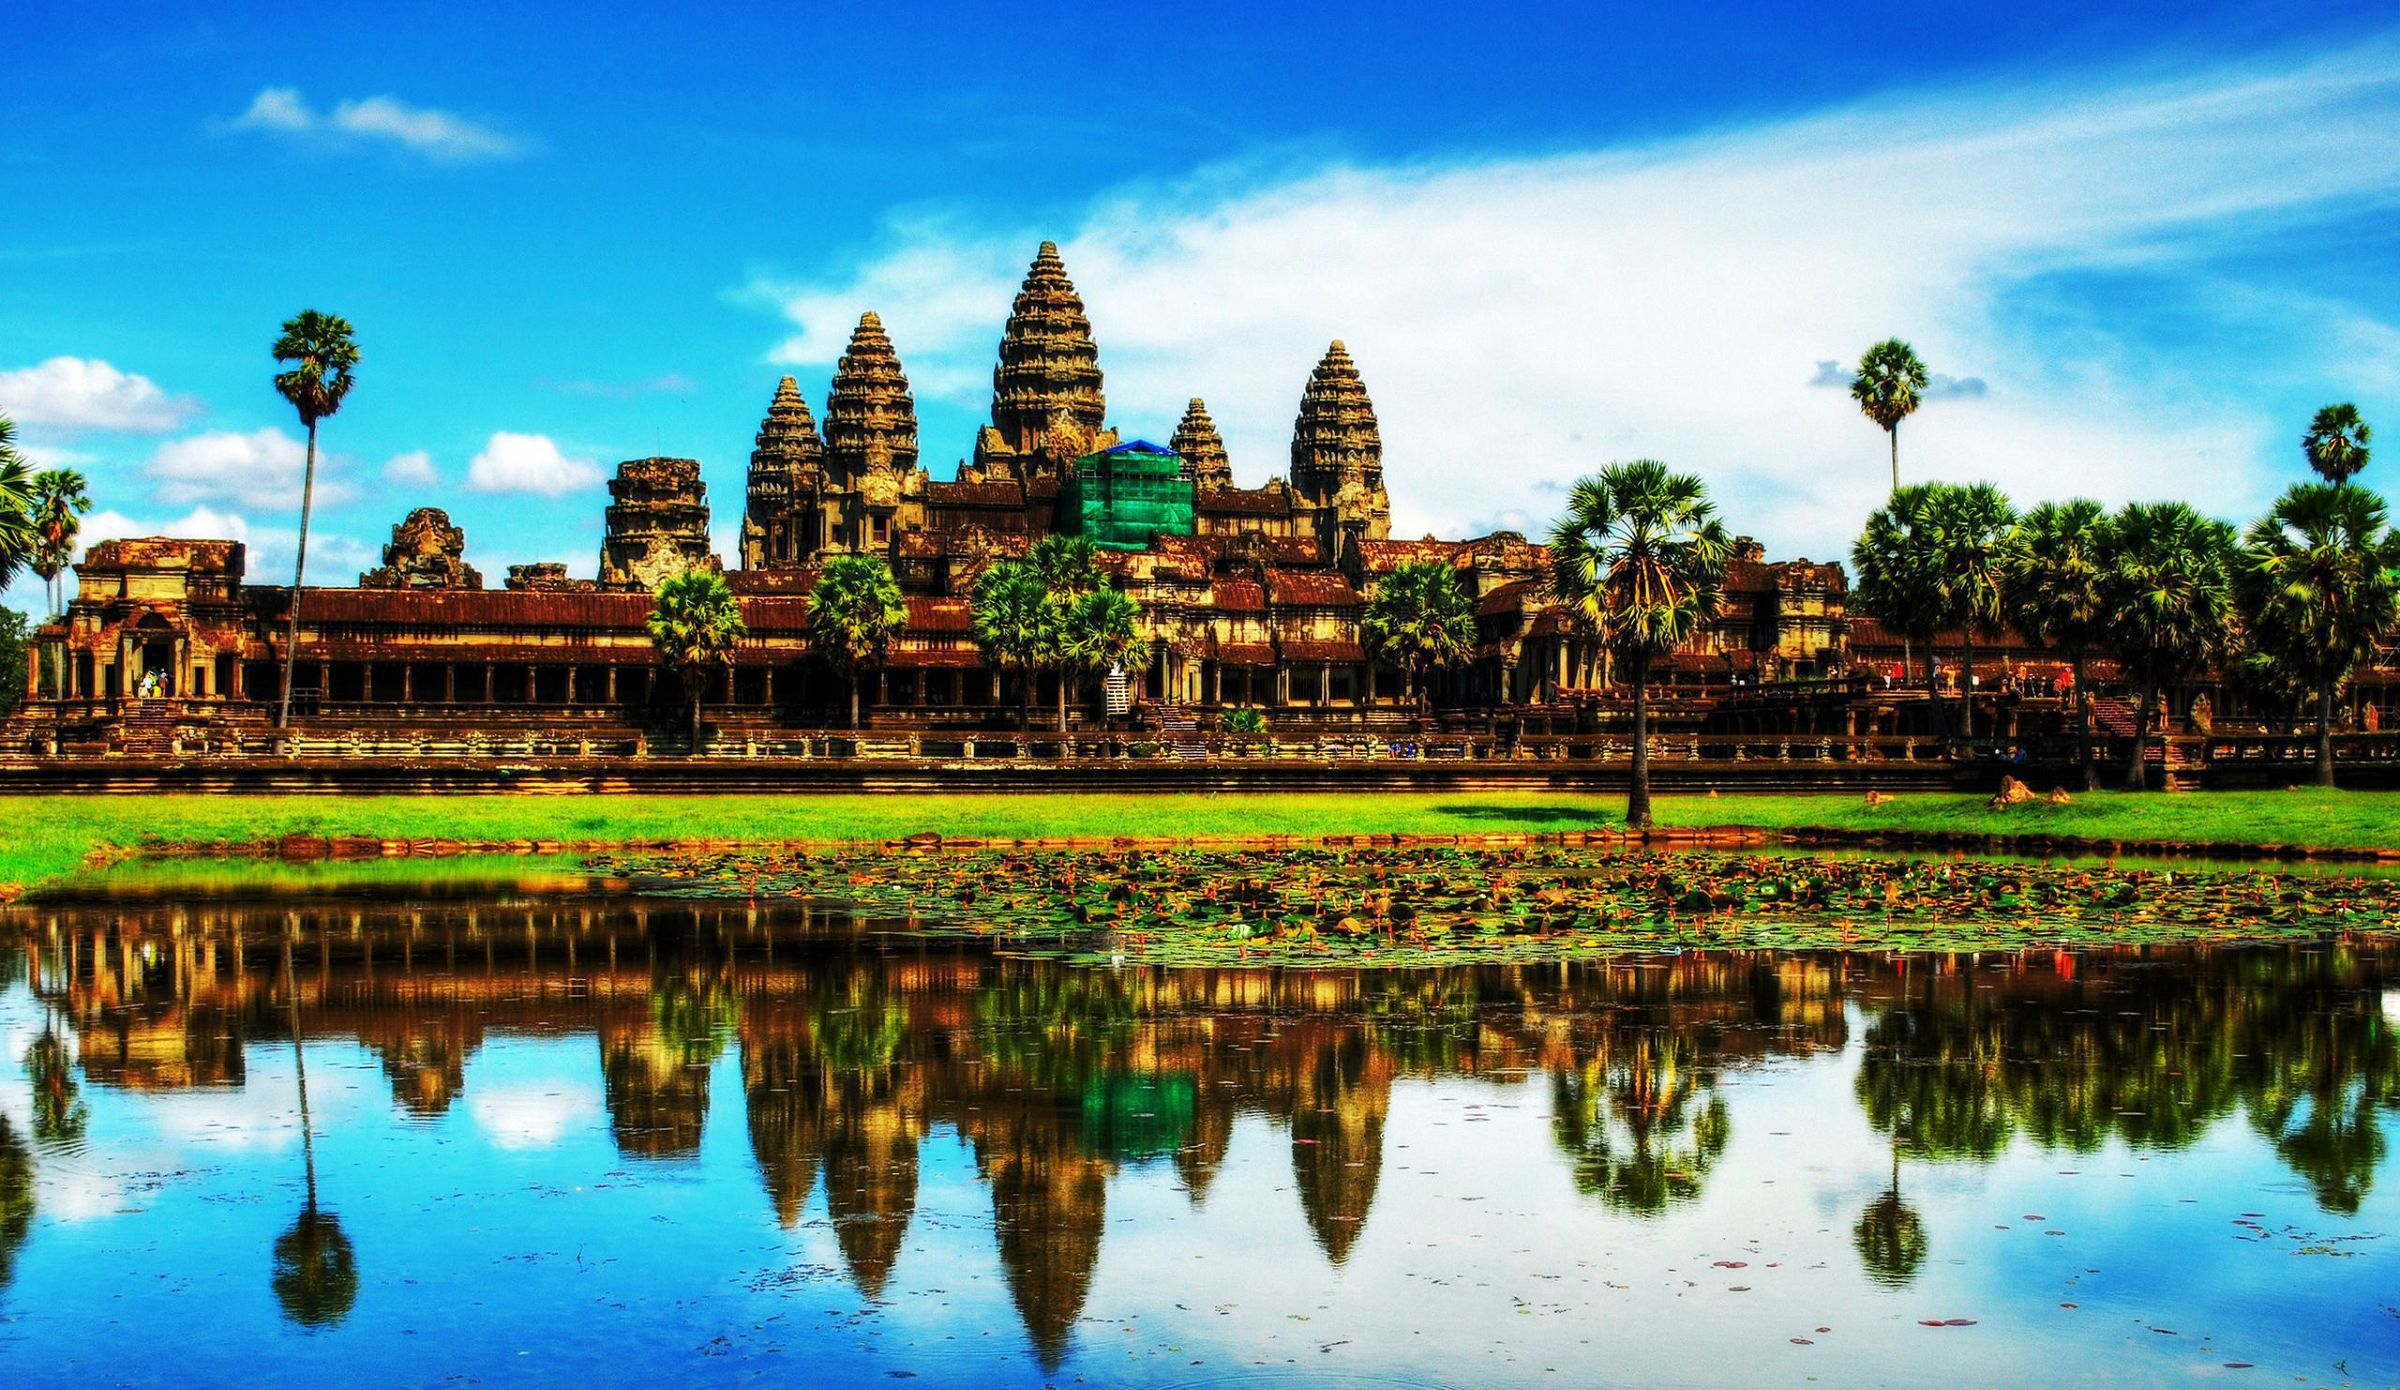 Angkor Wat Wallpapers HD